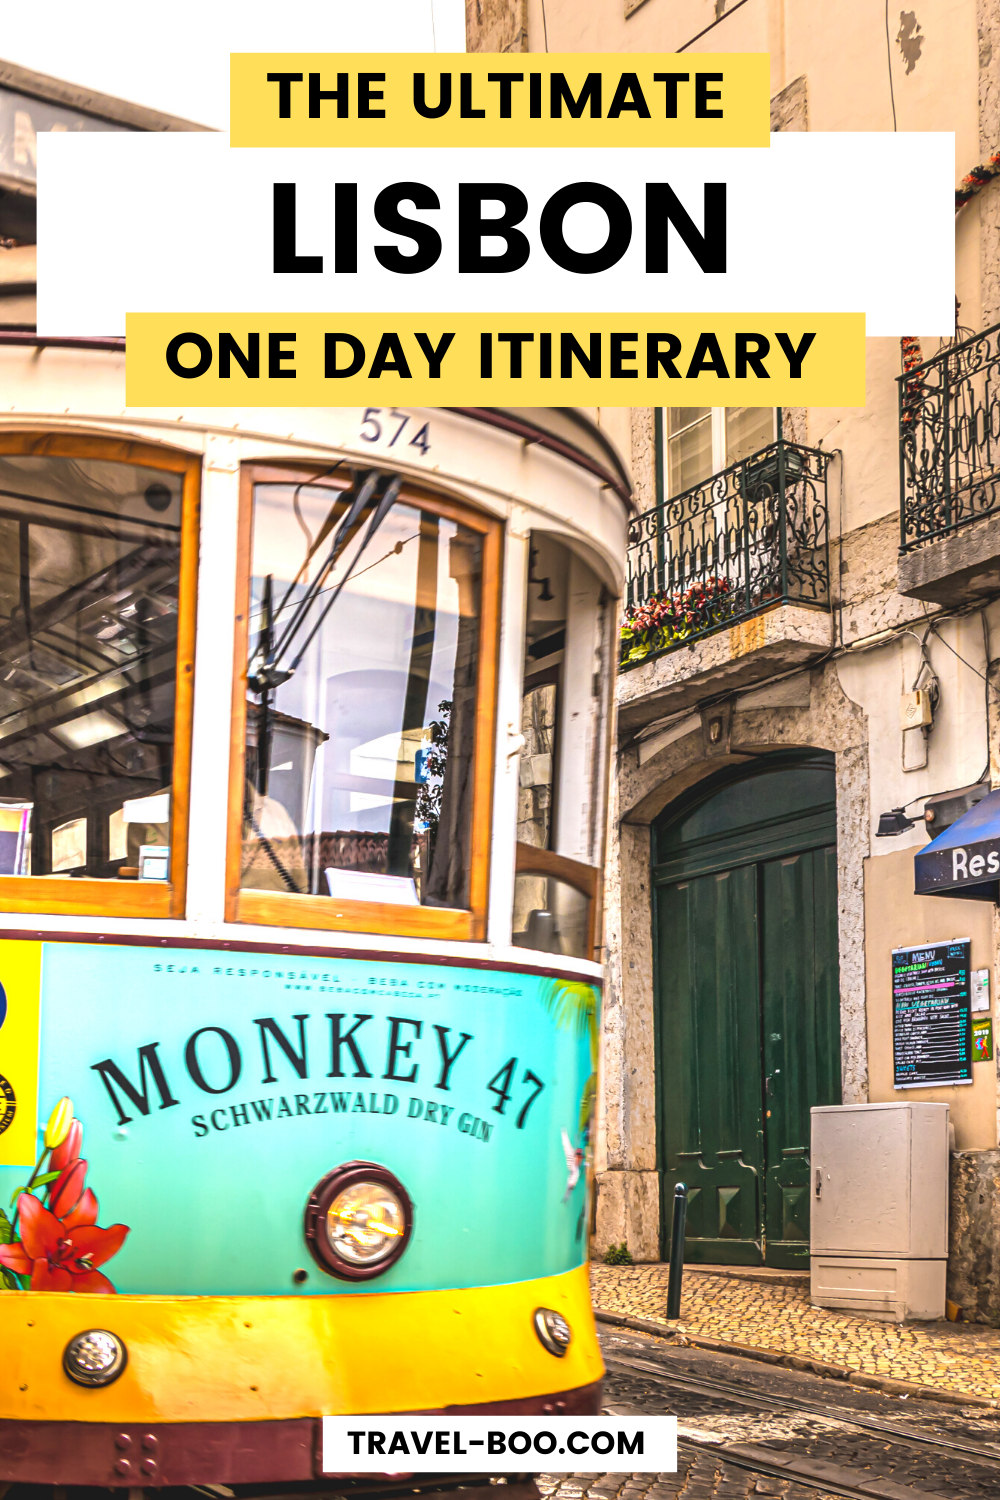 Lisbon One Day Itinerary: How Best To Spend One Day in Lisbon! Travel-Boo